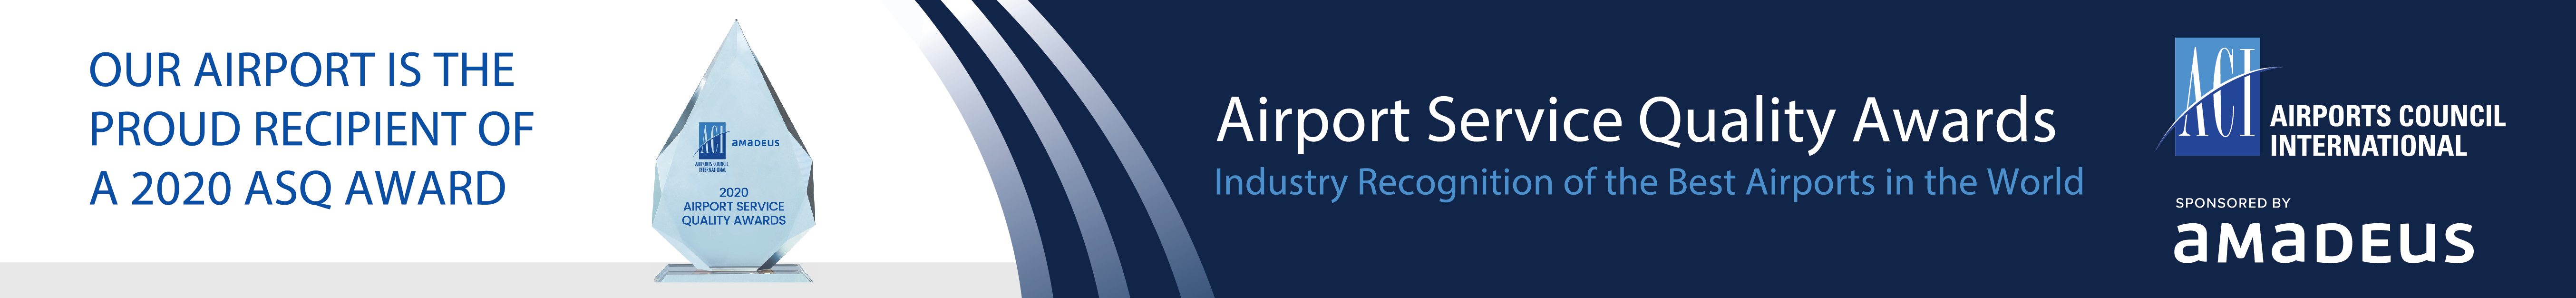 Airport Service Quality Awards